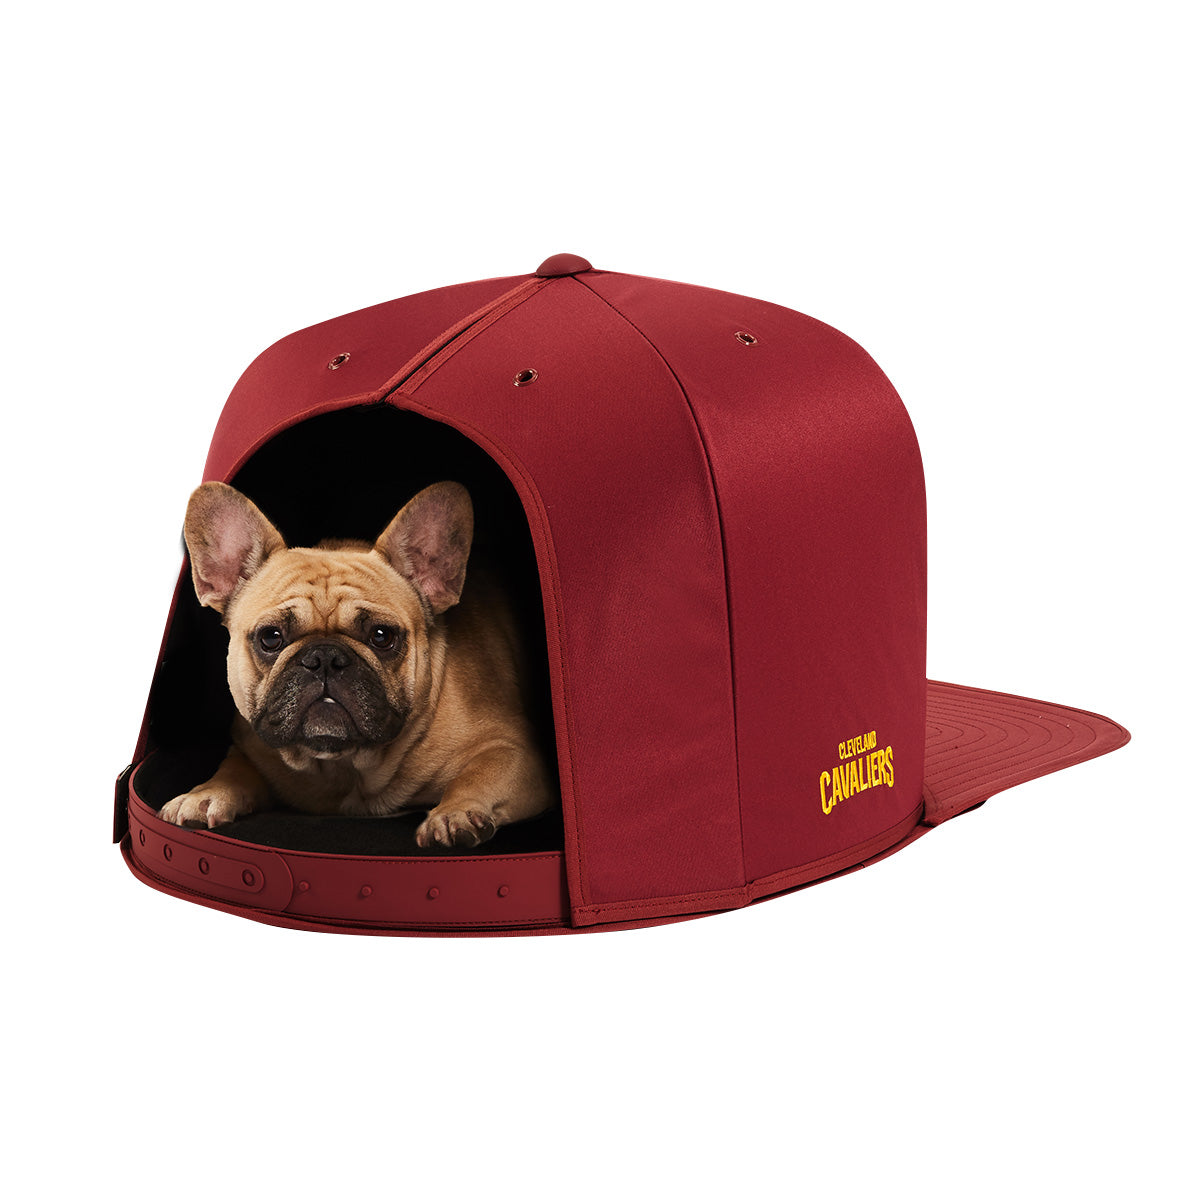 Nap Cap - NBA - Cleveland Cavaliers - Pet Bed